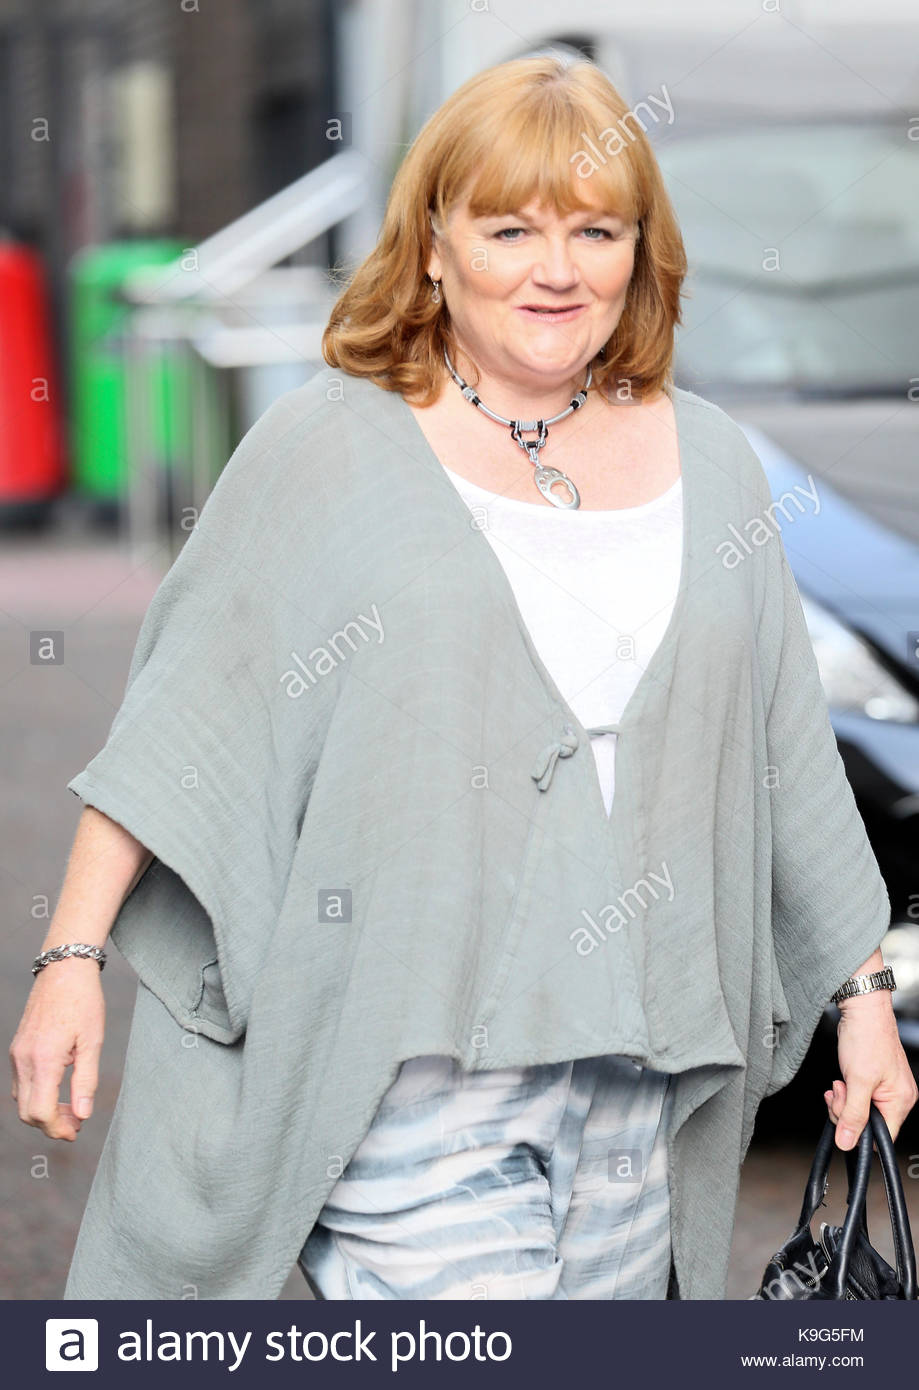 Lesley Nicol (actress) Lesley Nicol (actress) new foto